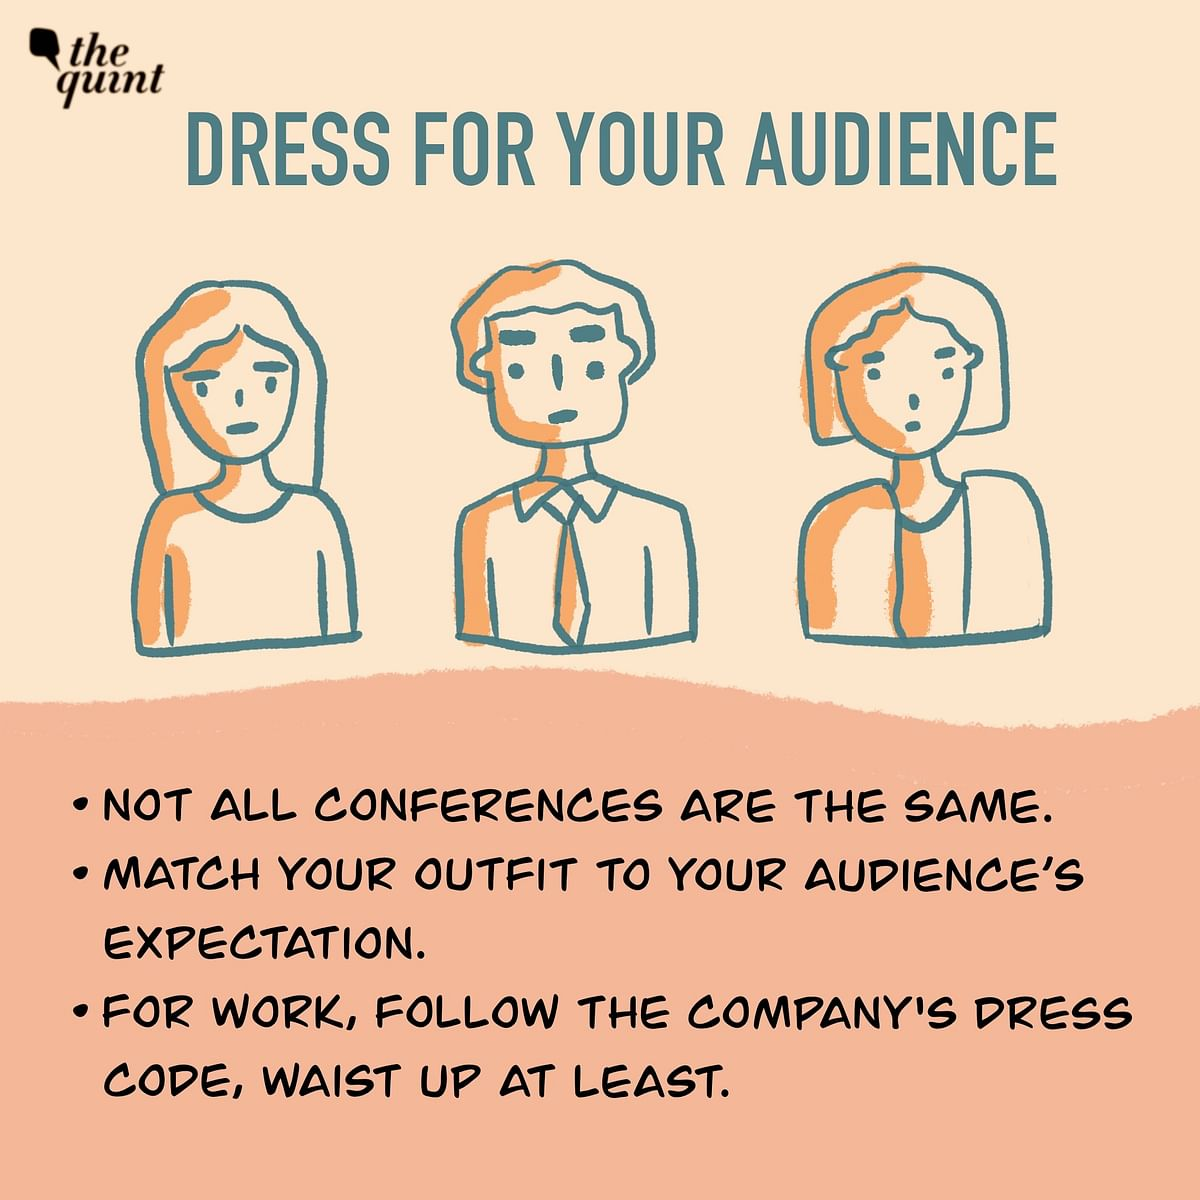 Dress for your audience.